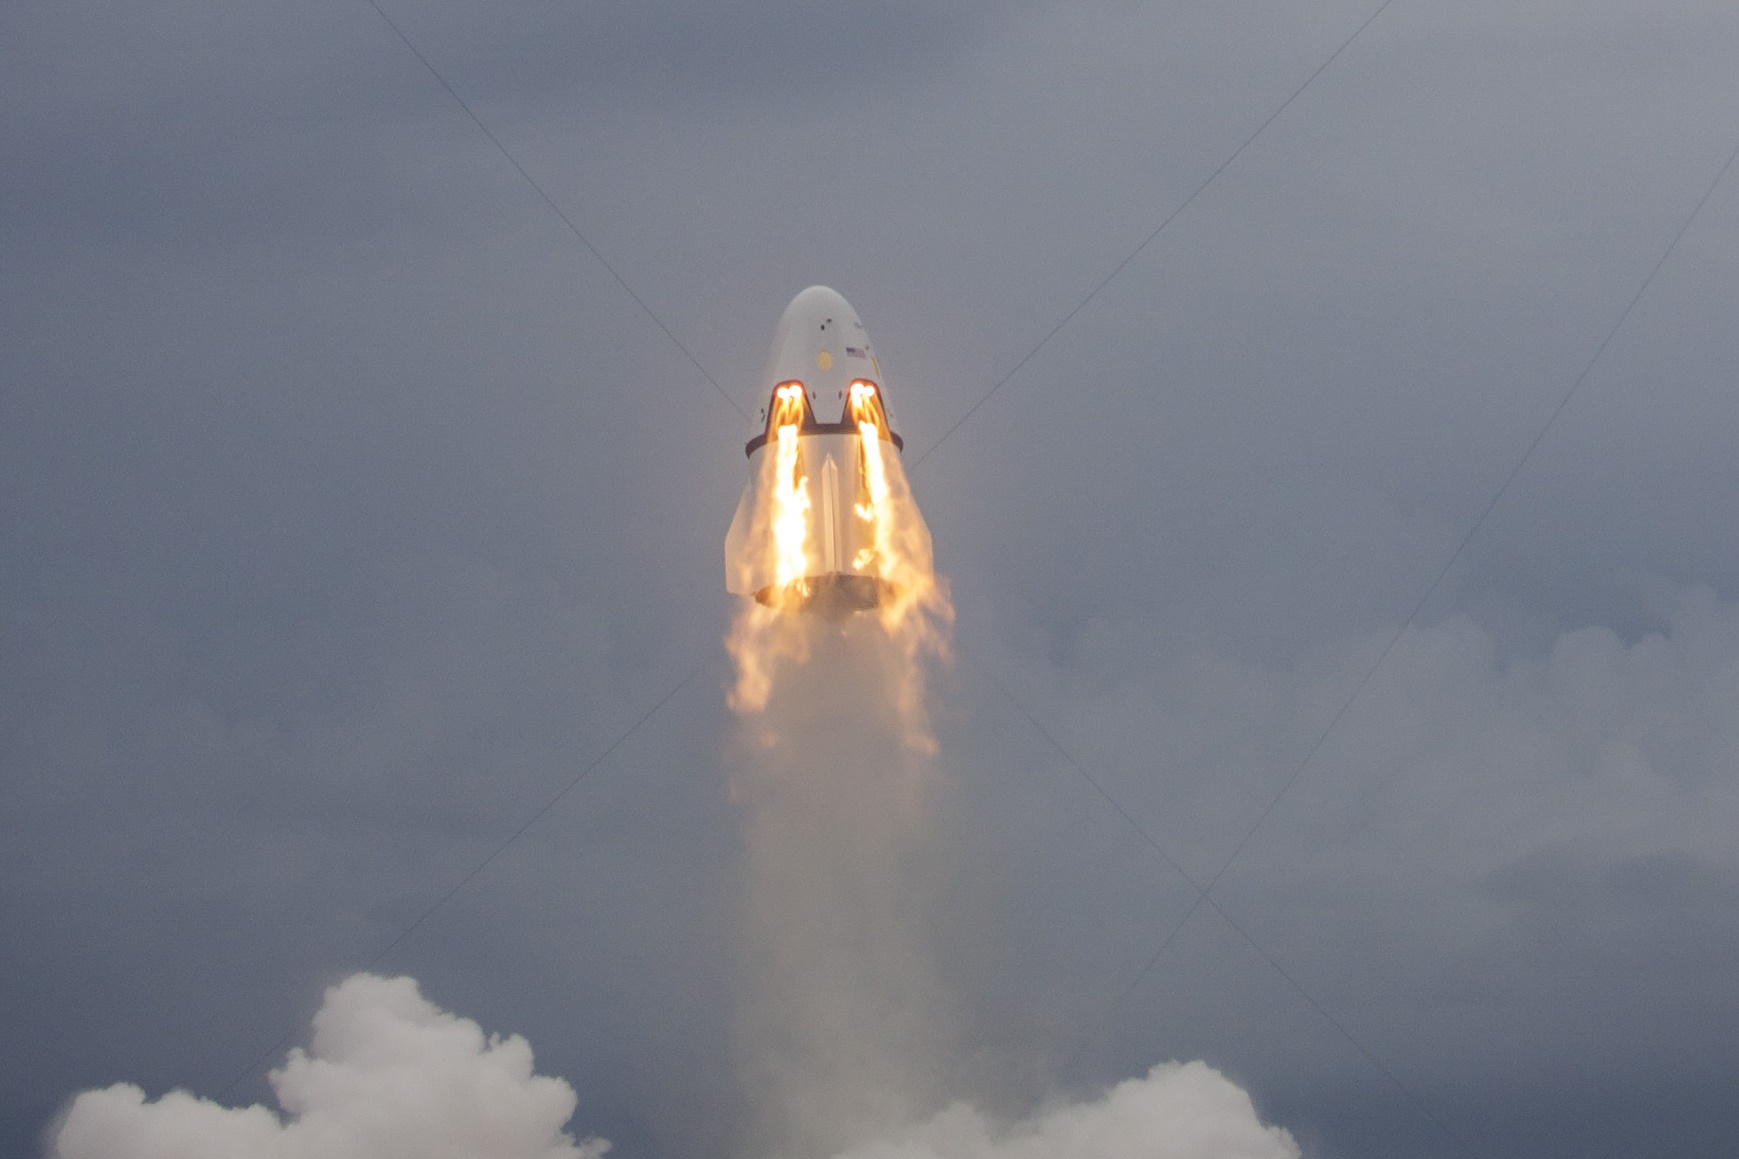 spacex dragon explosion - HD1739×1159